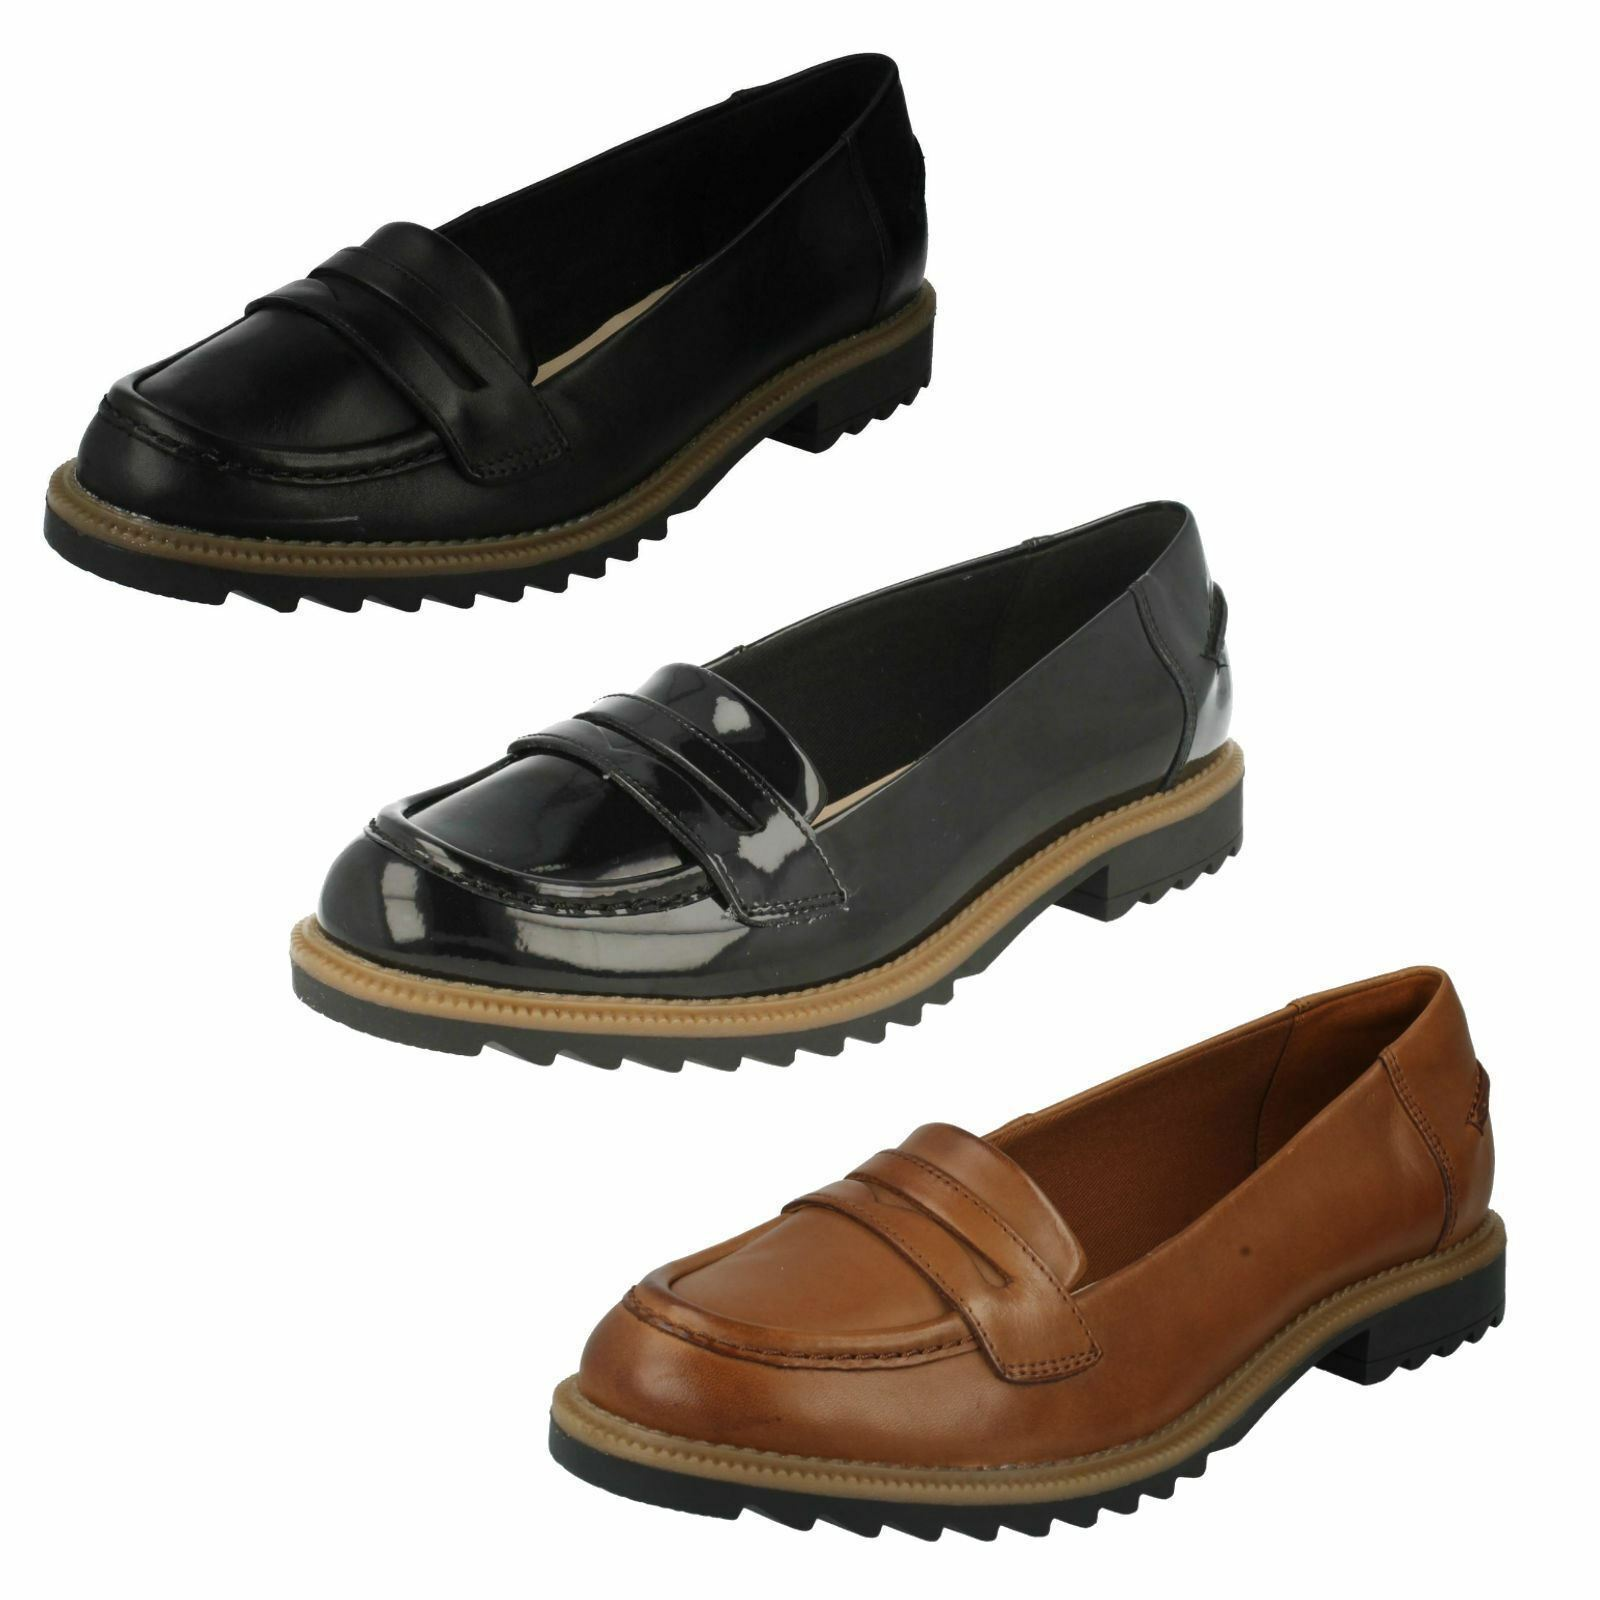 Ladies Clarks Loafers Loafers Loafers shoes - Griffin Milly 5d7f11